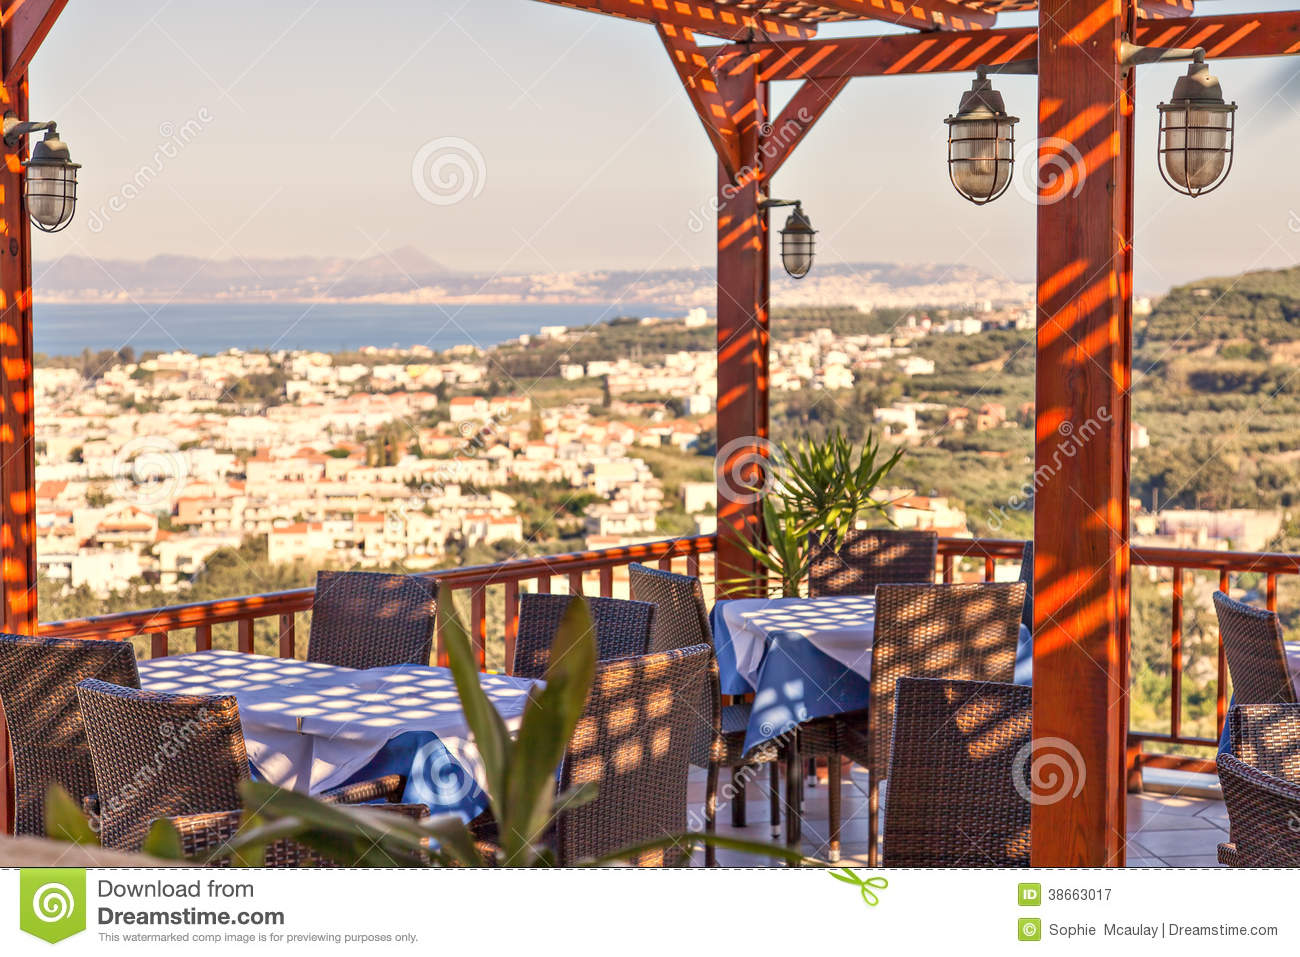 Terrace restaurant royalty free stock photography image for Restaurant with terrace